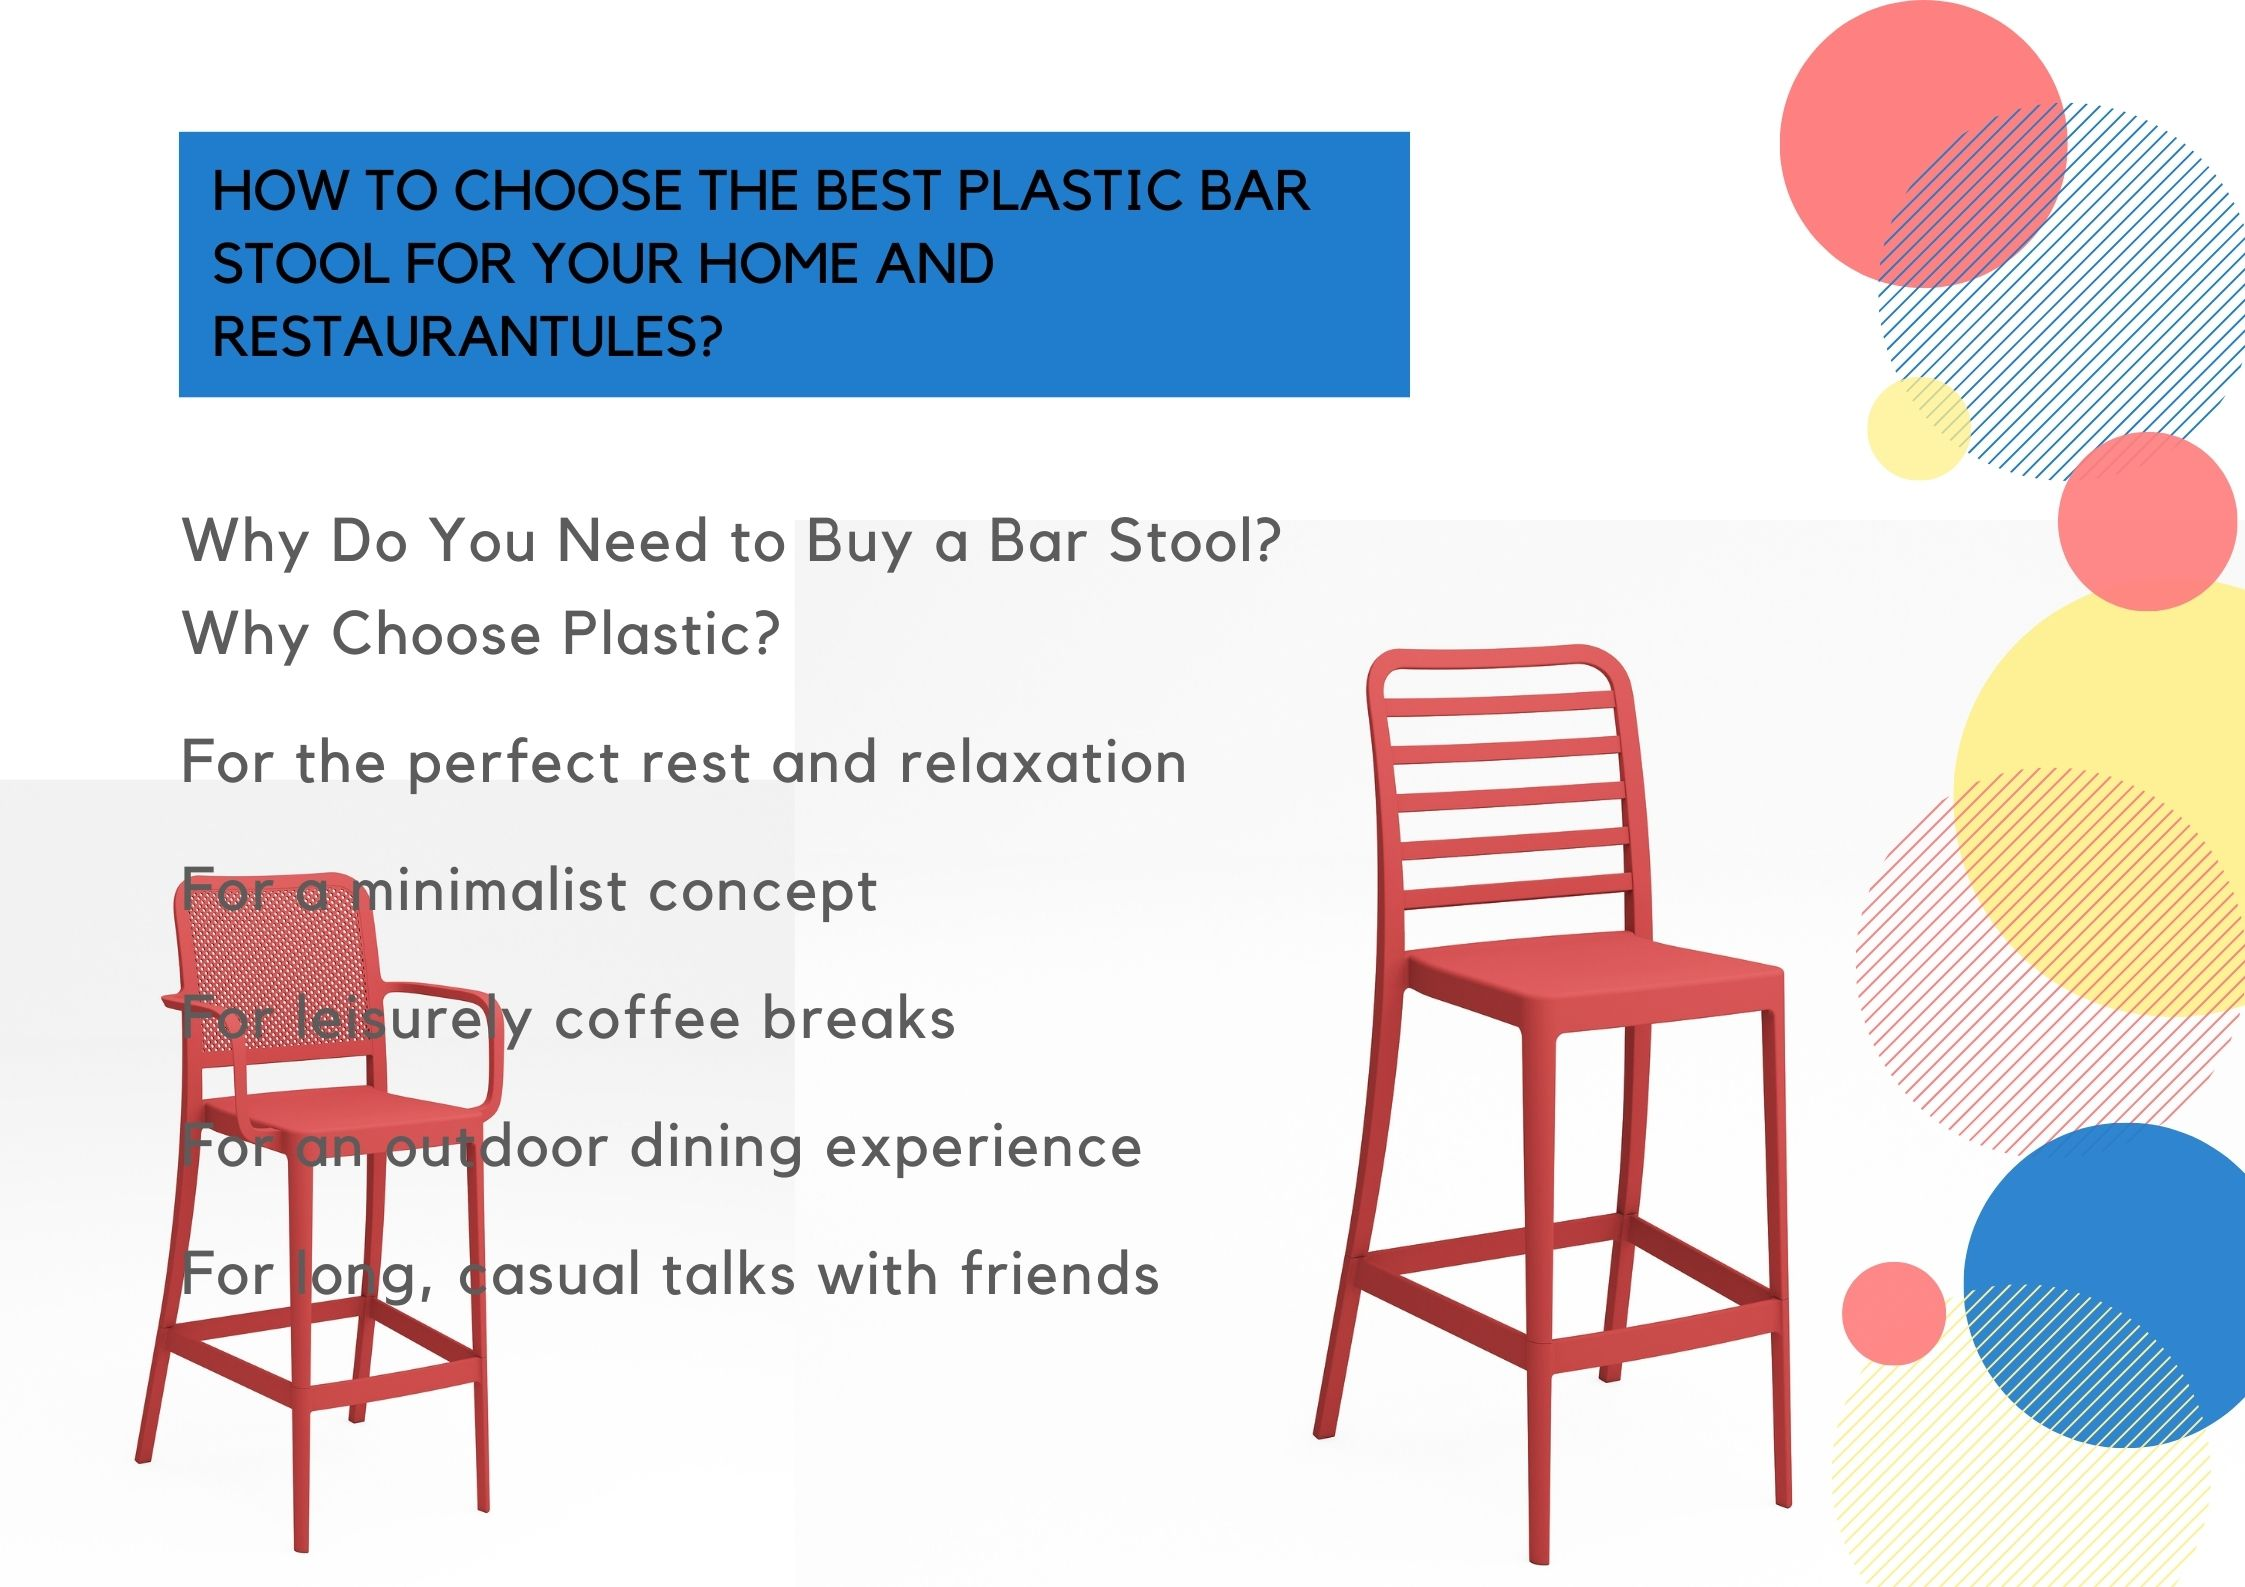 How to Choose the Best Plastic Bar Stool for Your Home and Restaurantules